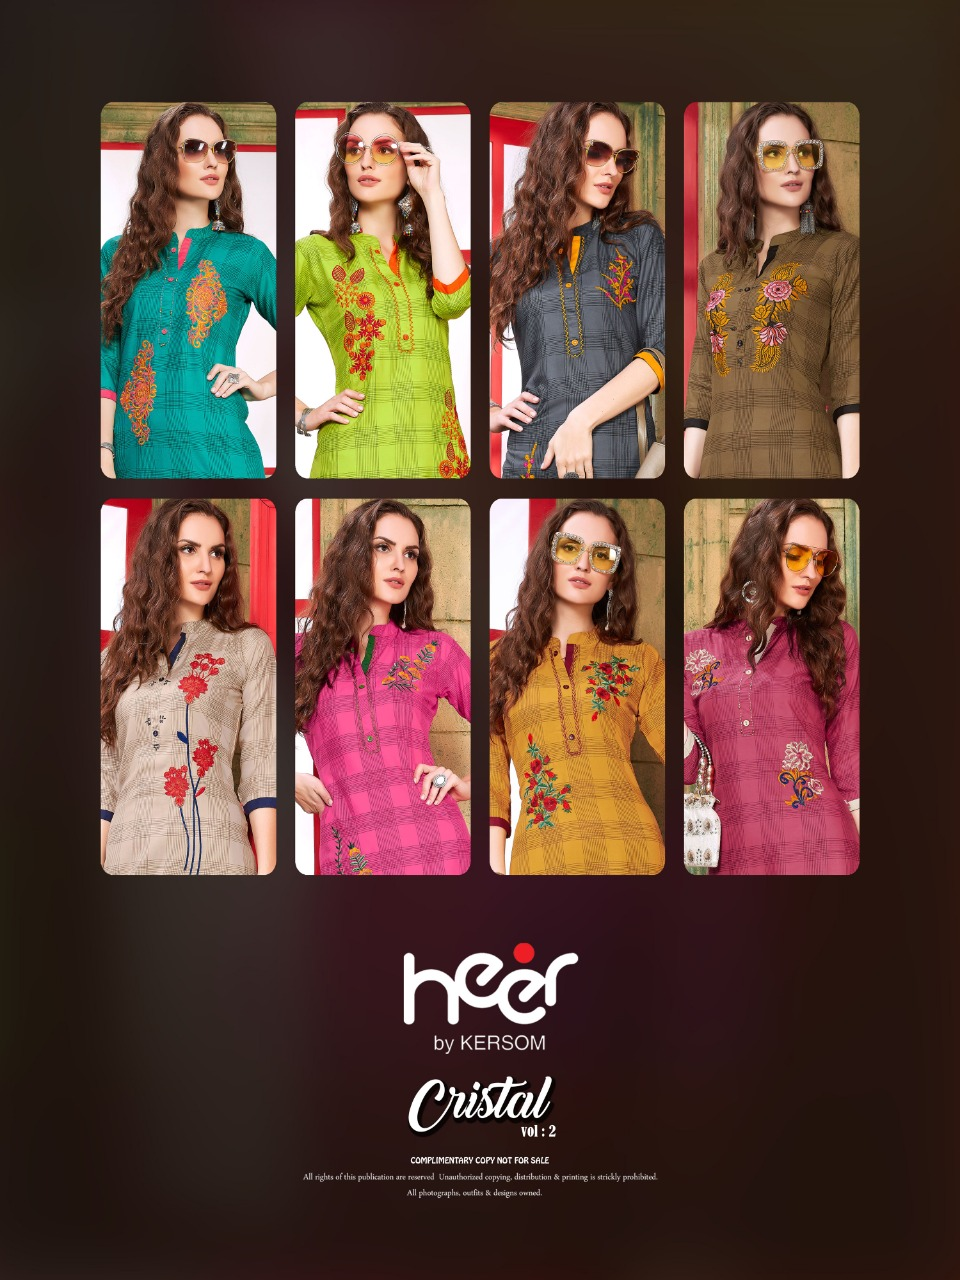 Heer Cristal 2 collection 3